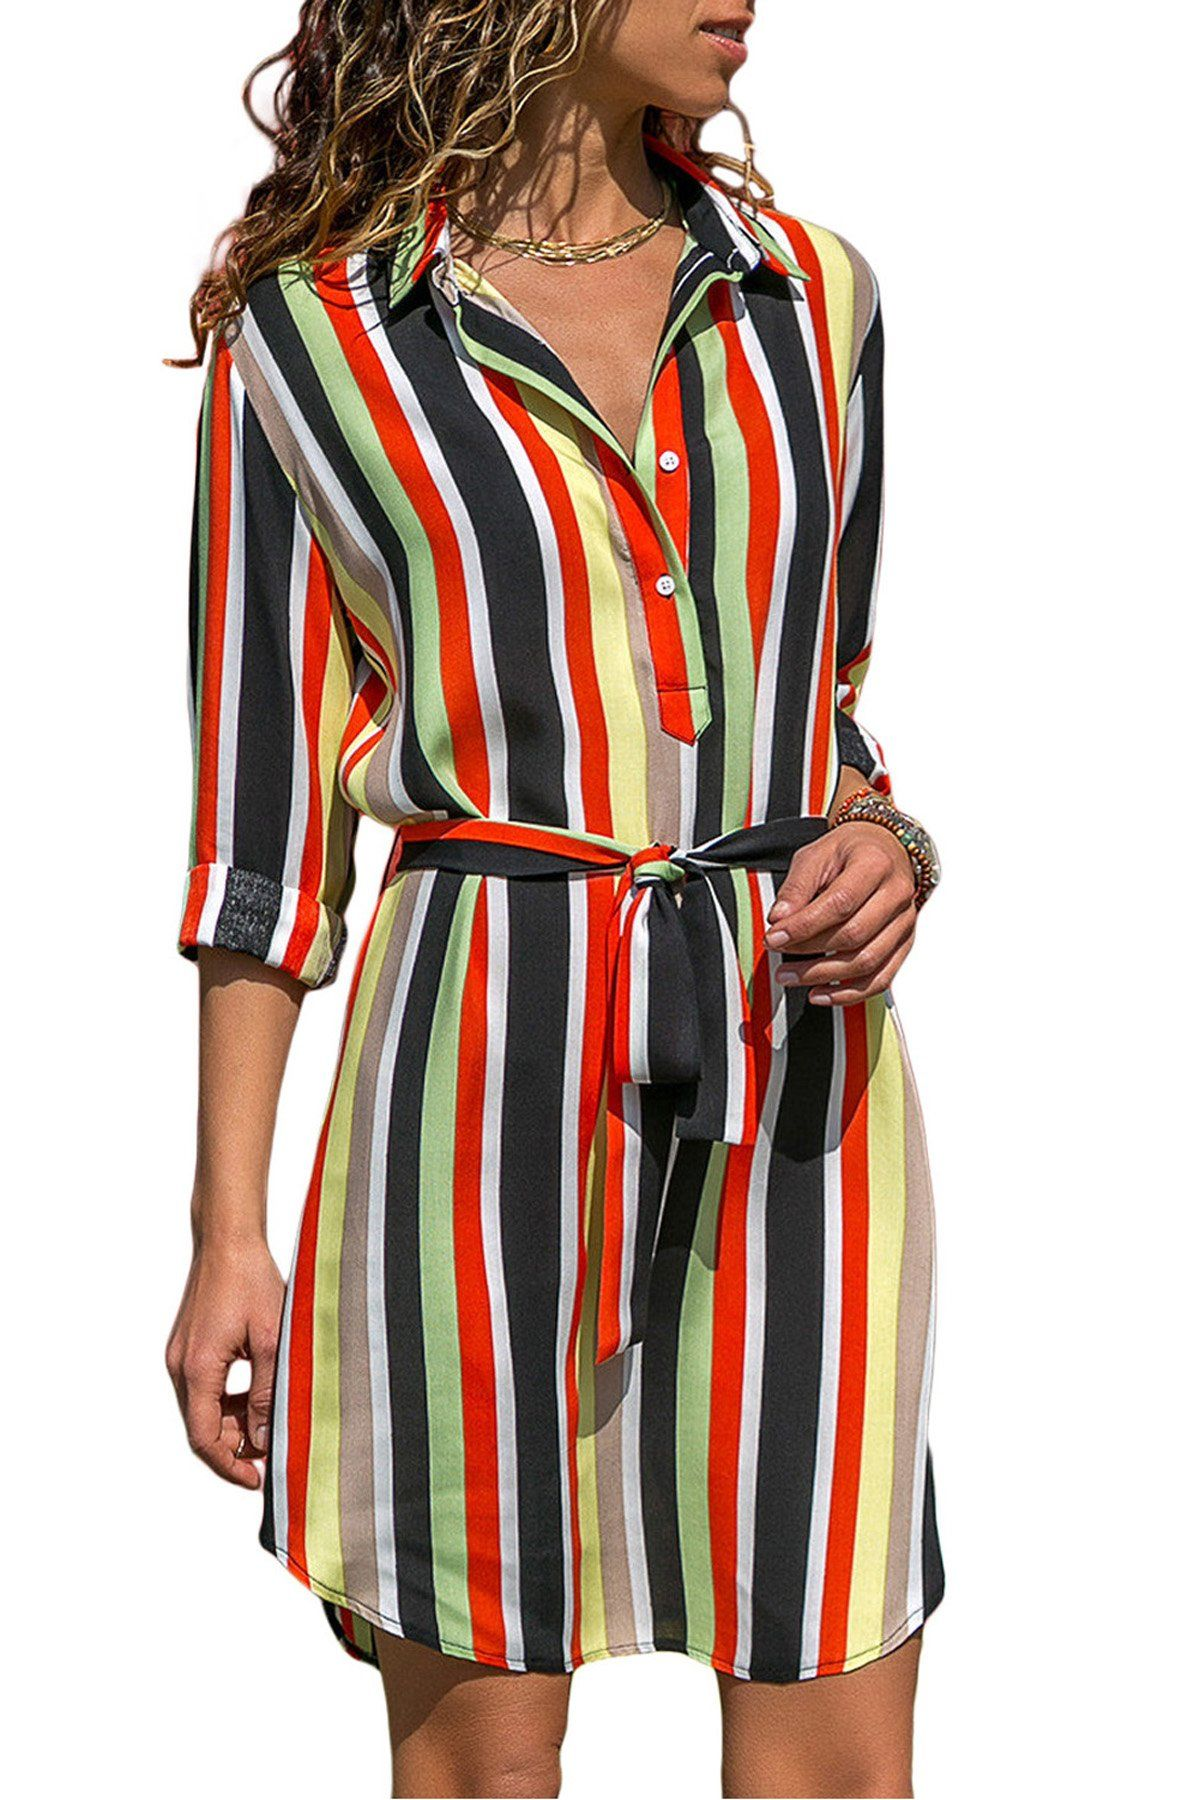 Five Color Print Button V Neck Shirt Dresses in 2019  6e4bbe36cfa5